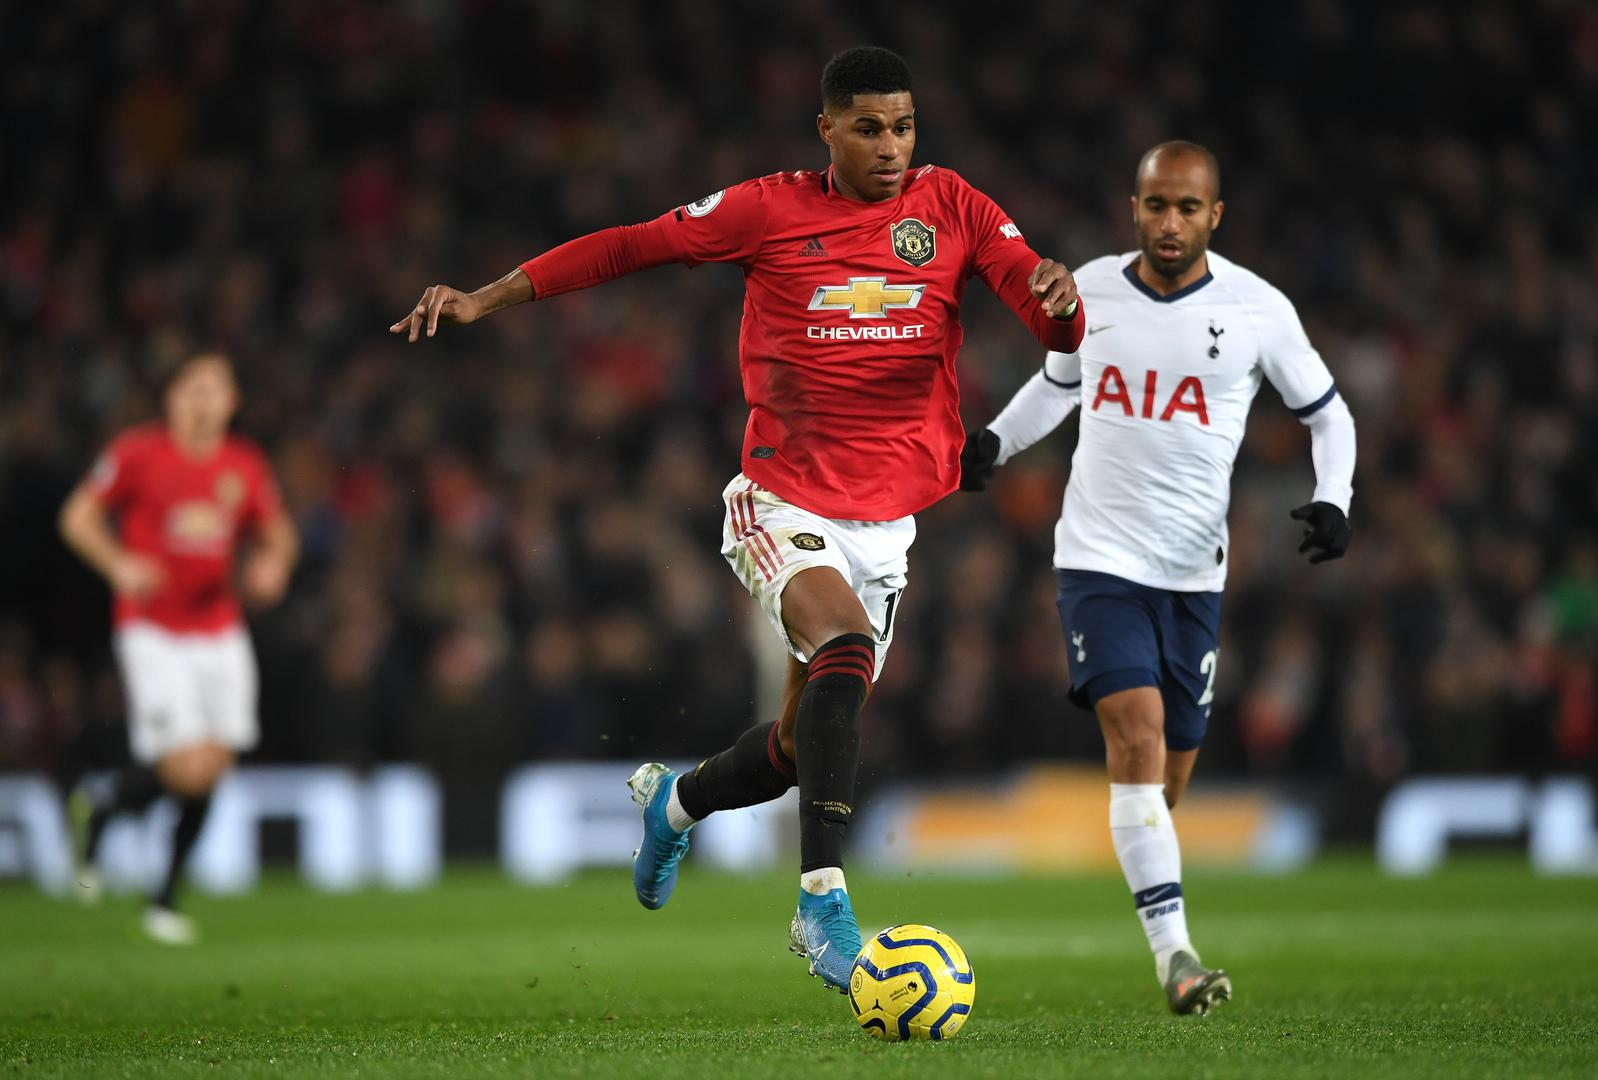 Marcus Rashford races away with 。。the ball, pursued by Lucas Moura